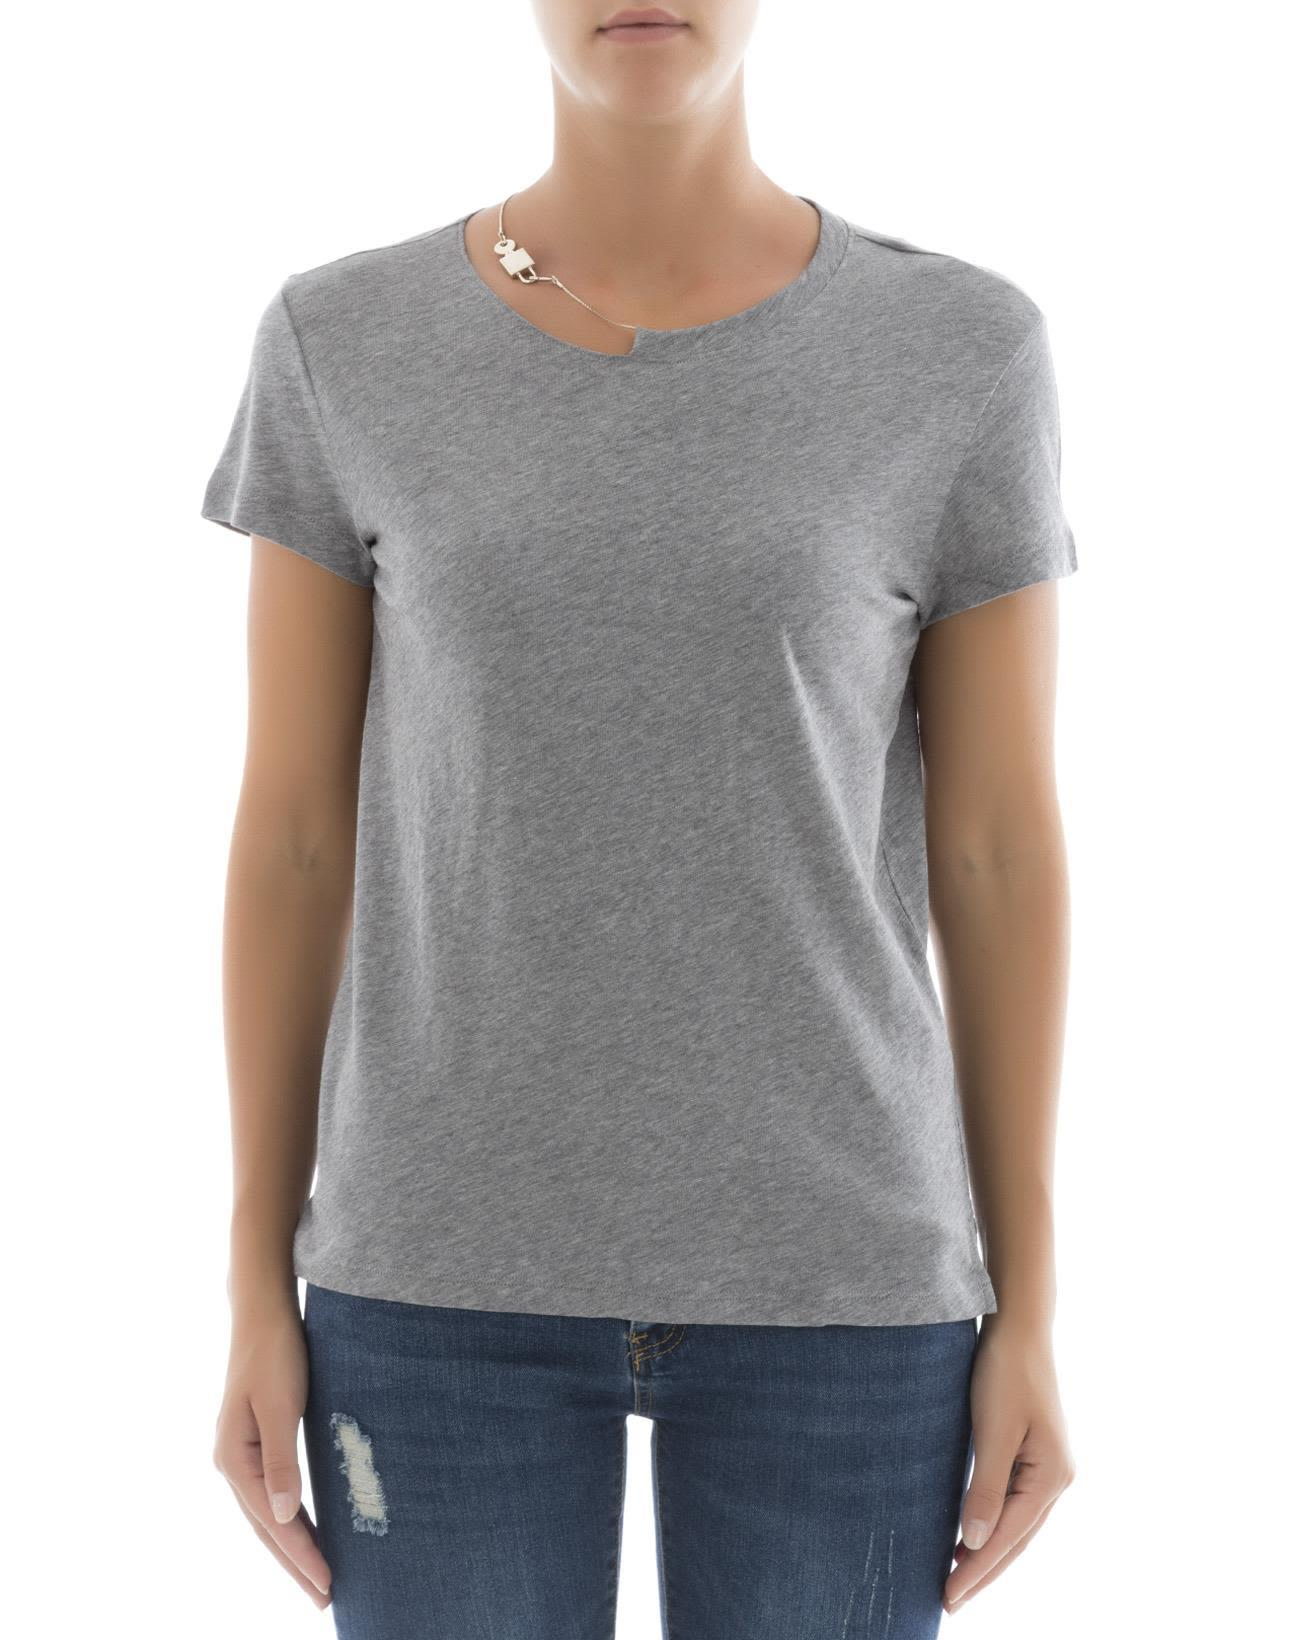 Valentino The Rockstud Embellished Cotton-Jersey T-Shirt In Gray